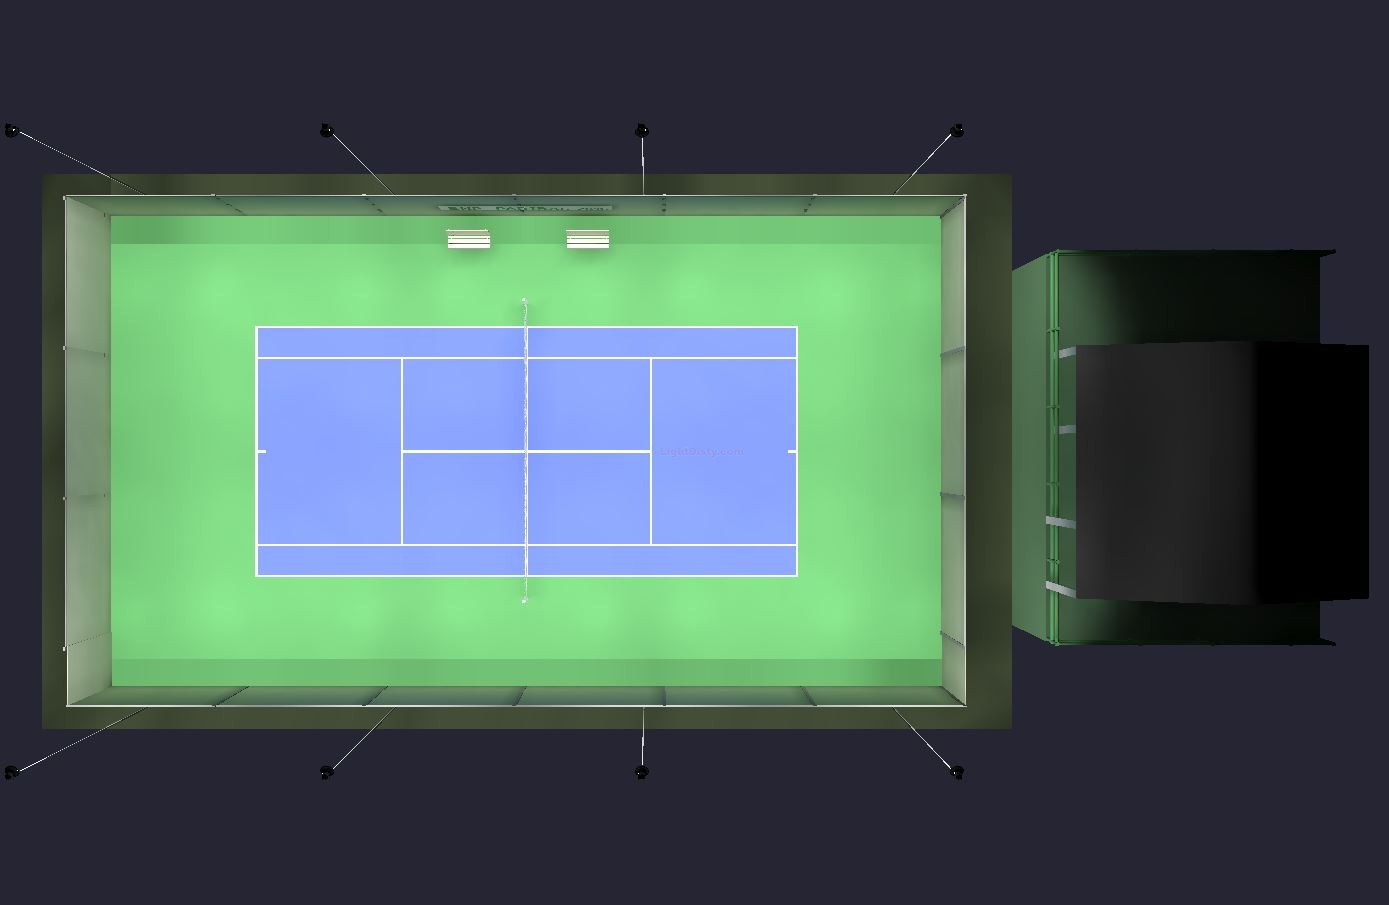 3D model of tennis court with LED lighting fixtures